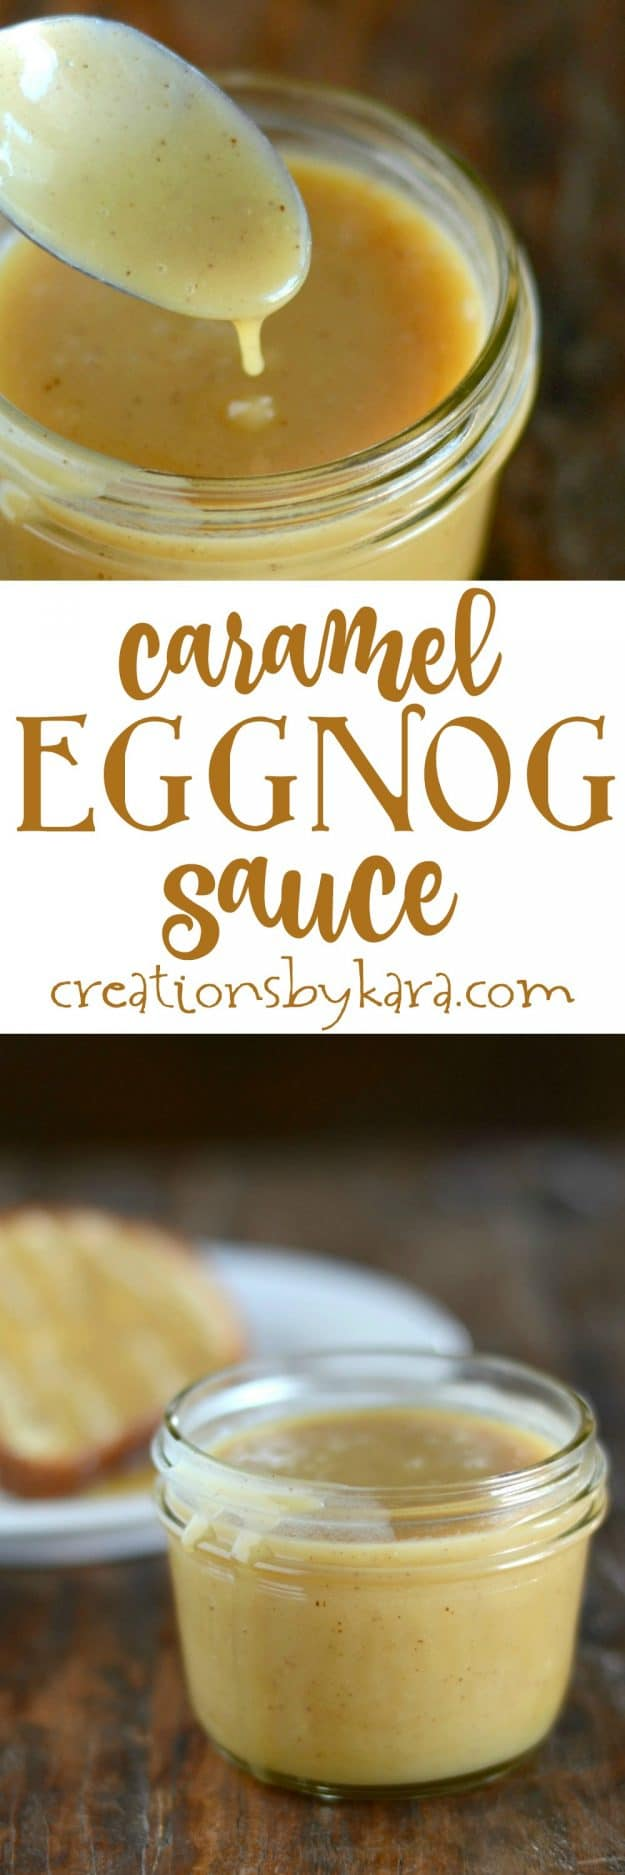 caramel eggnog sauce title photo